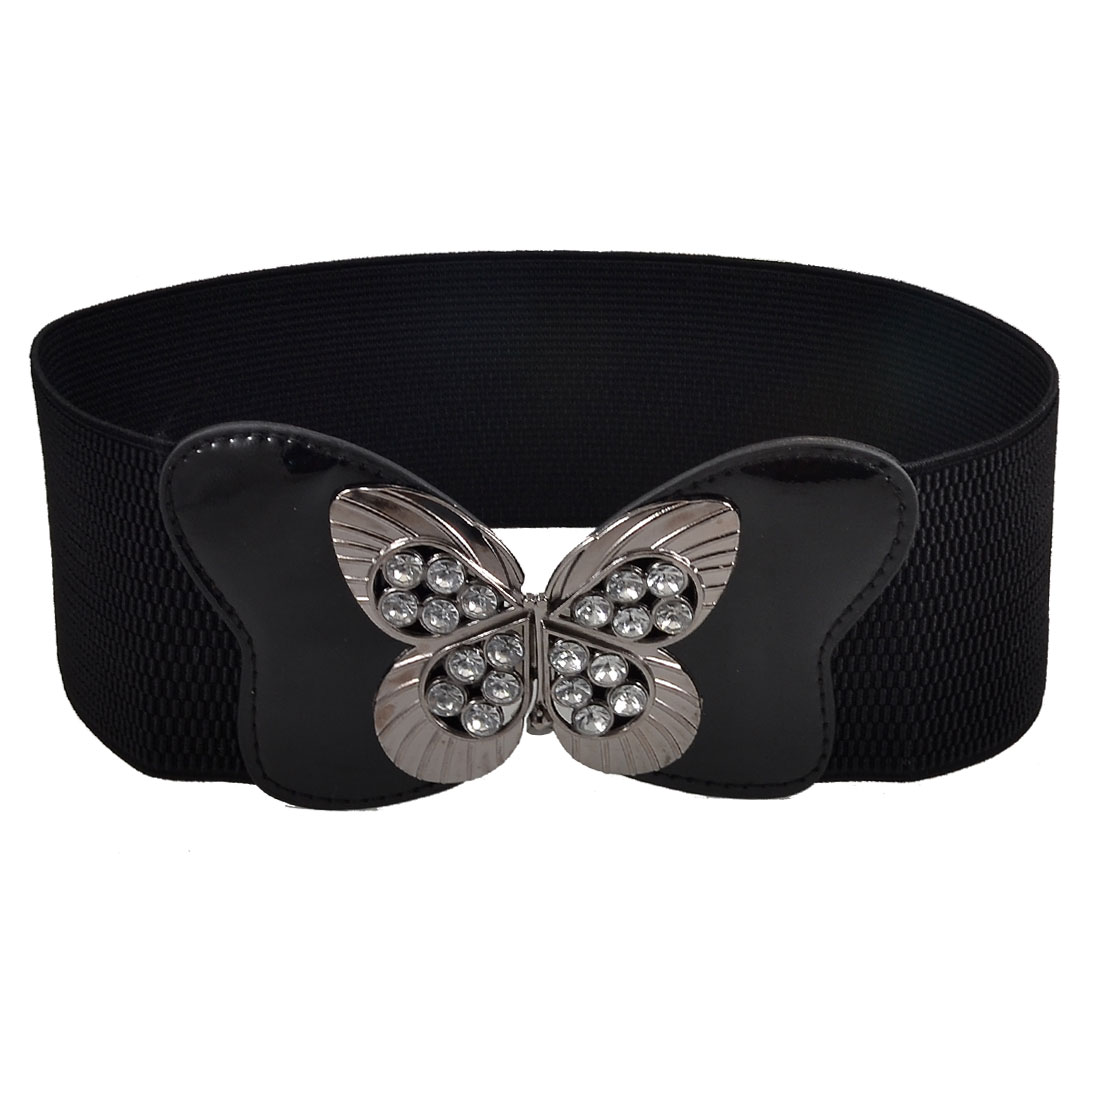 Ladies Hollow Butterfly Buckle Rhinestone Inlaid Black Elastic Waist Belt